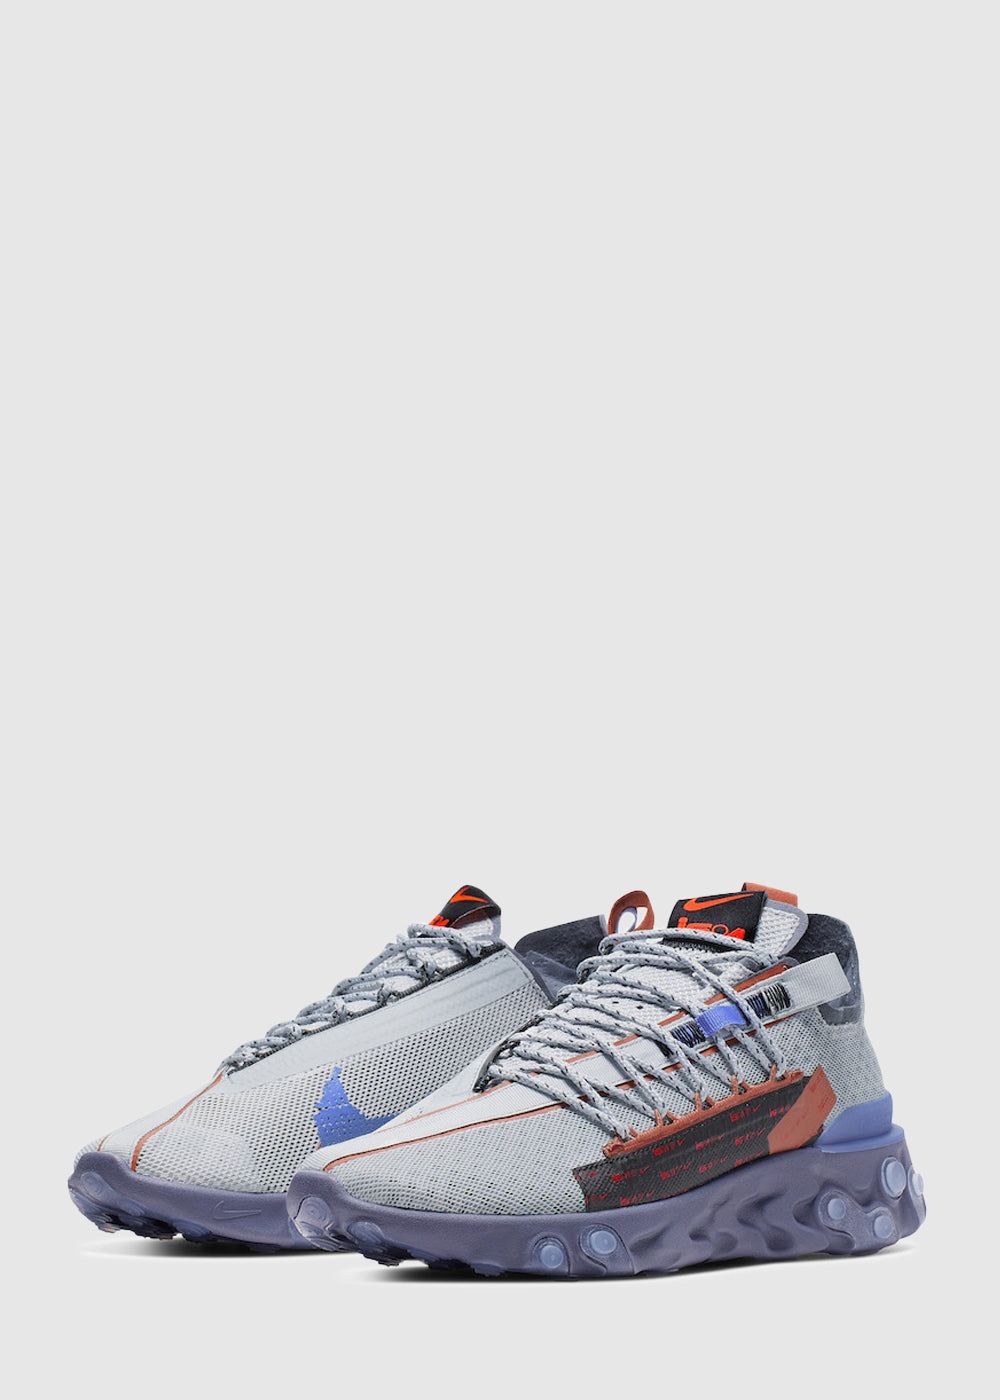 nike-ispa-react-grey-2